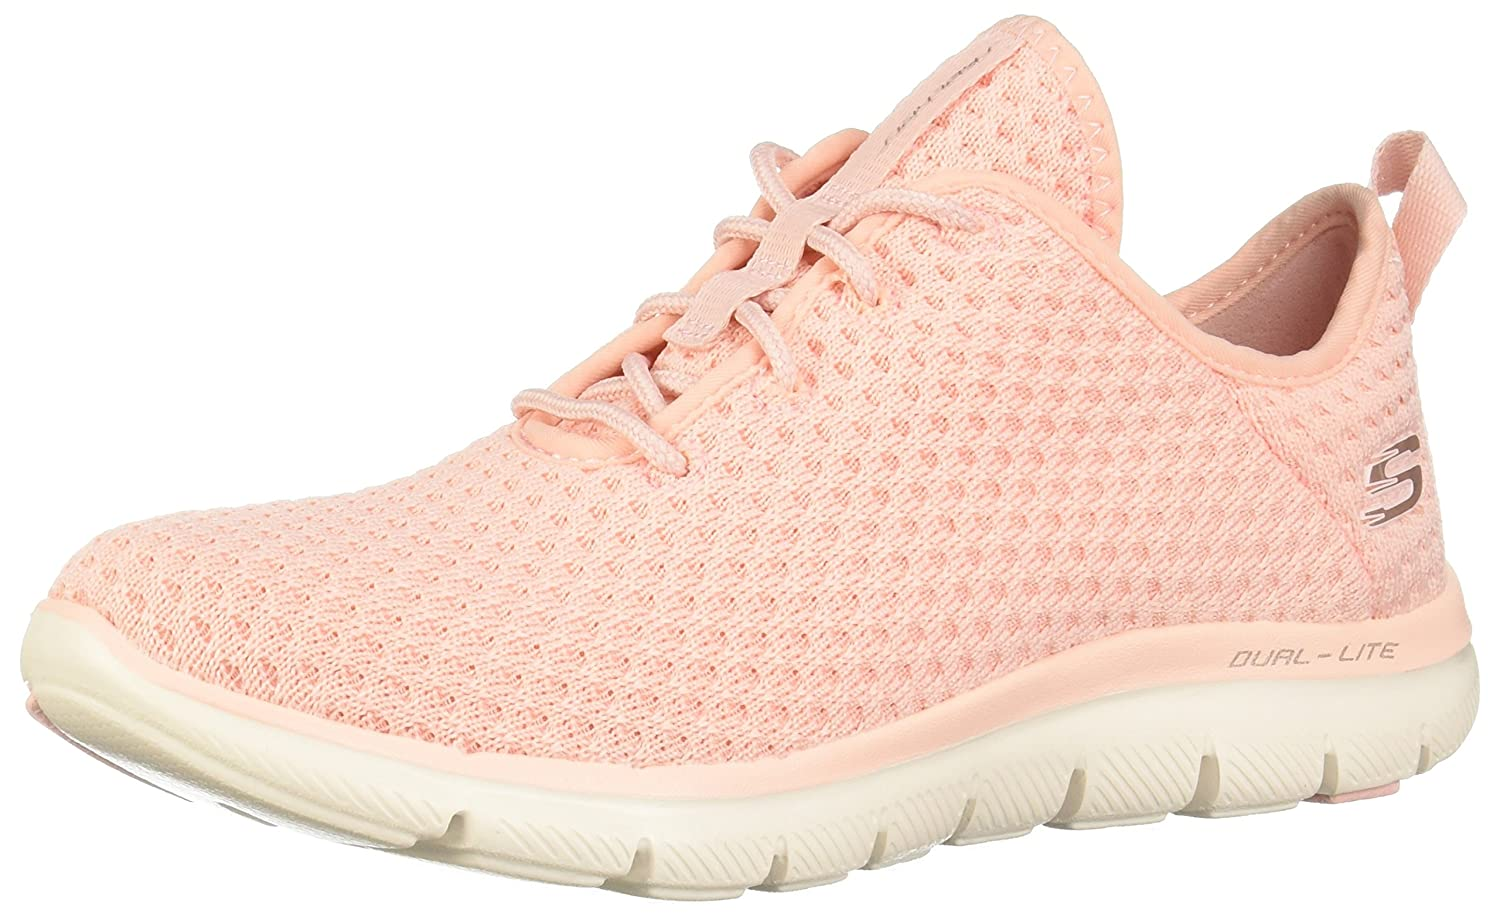 Skechers Sport Women's Flex Appeal 2.0 Bold Move Fashion Sneaker B074S6GR1V 7 B(M) US|Light Pink